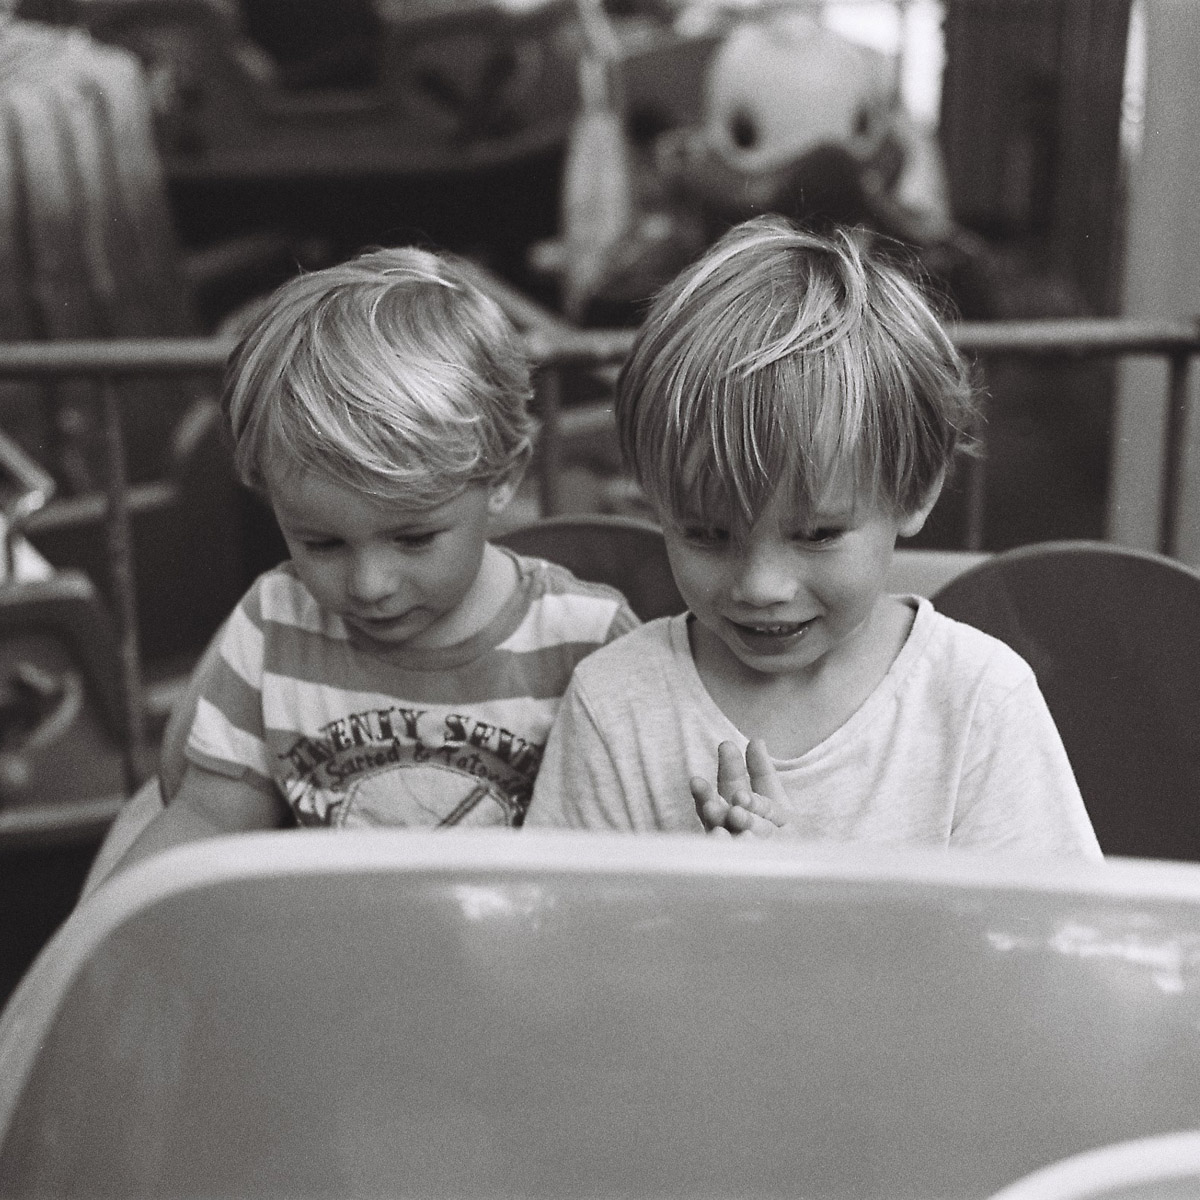 Jake and Zac enjoying a fairground ride